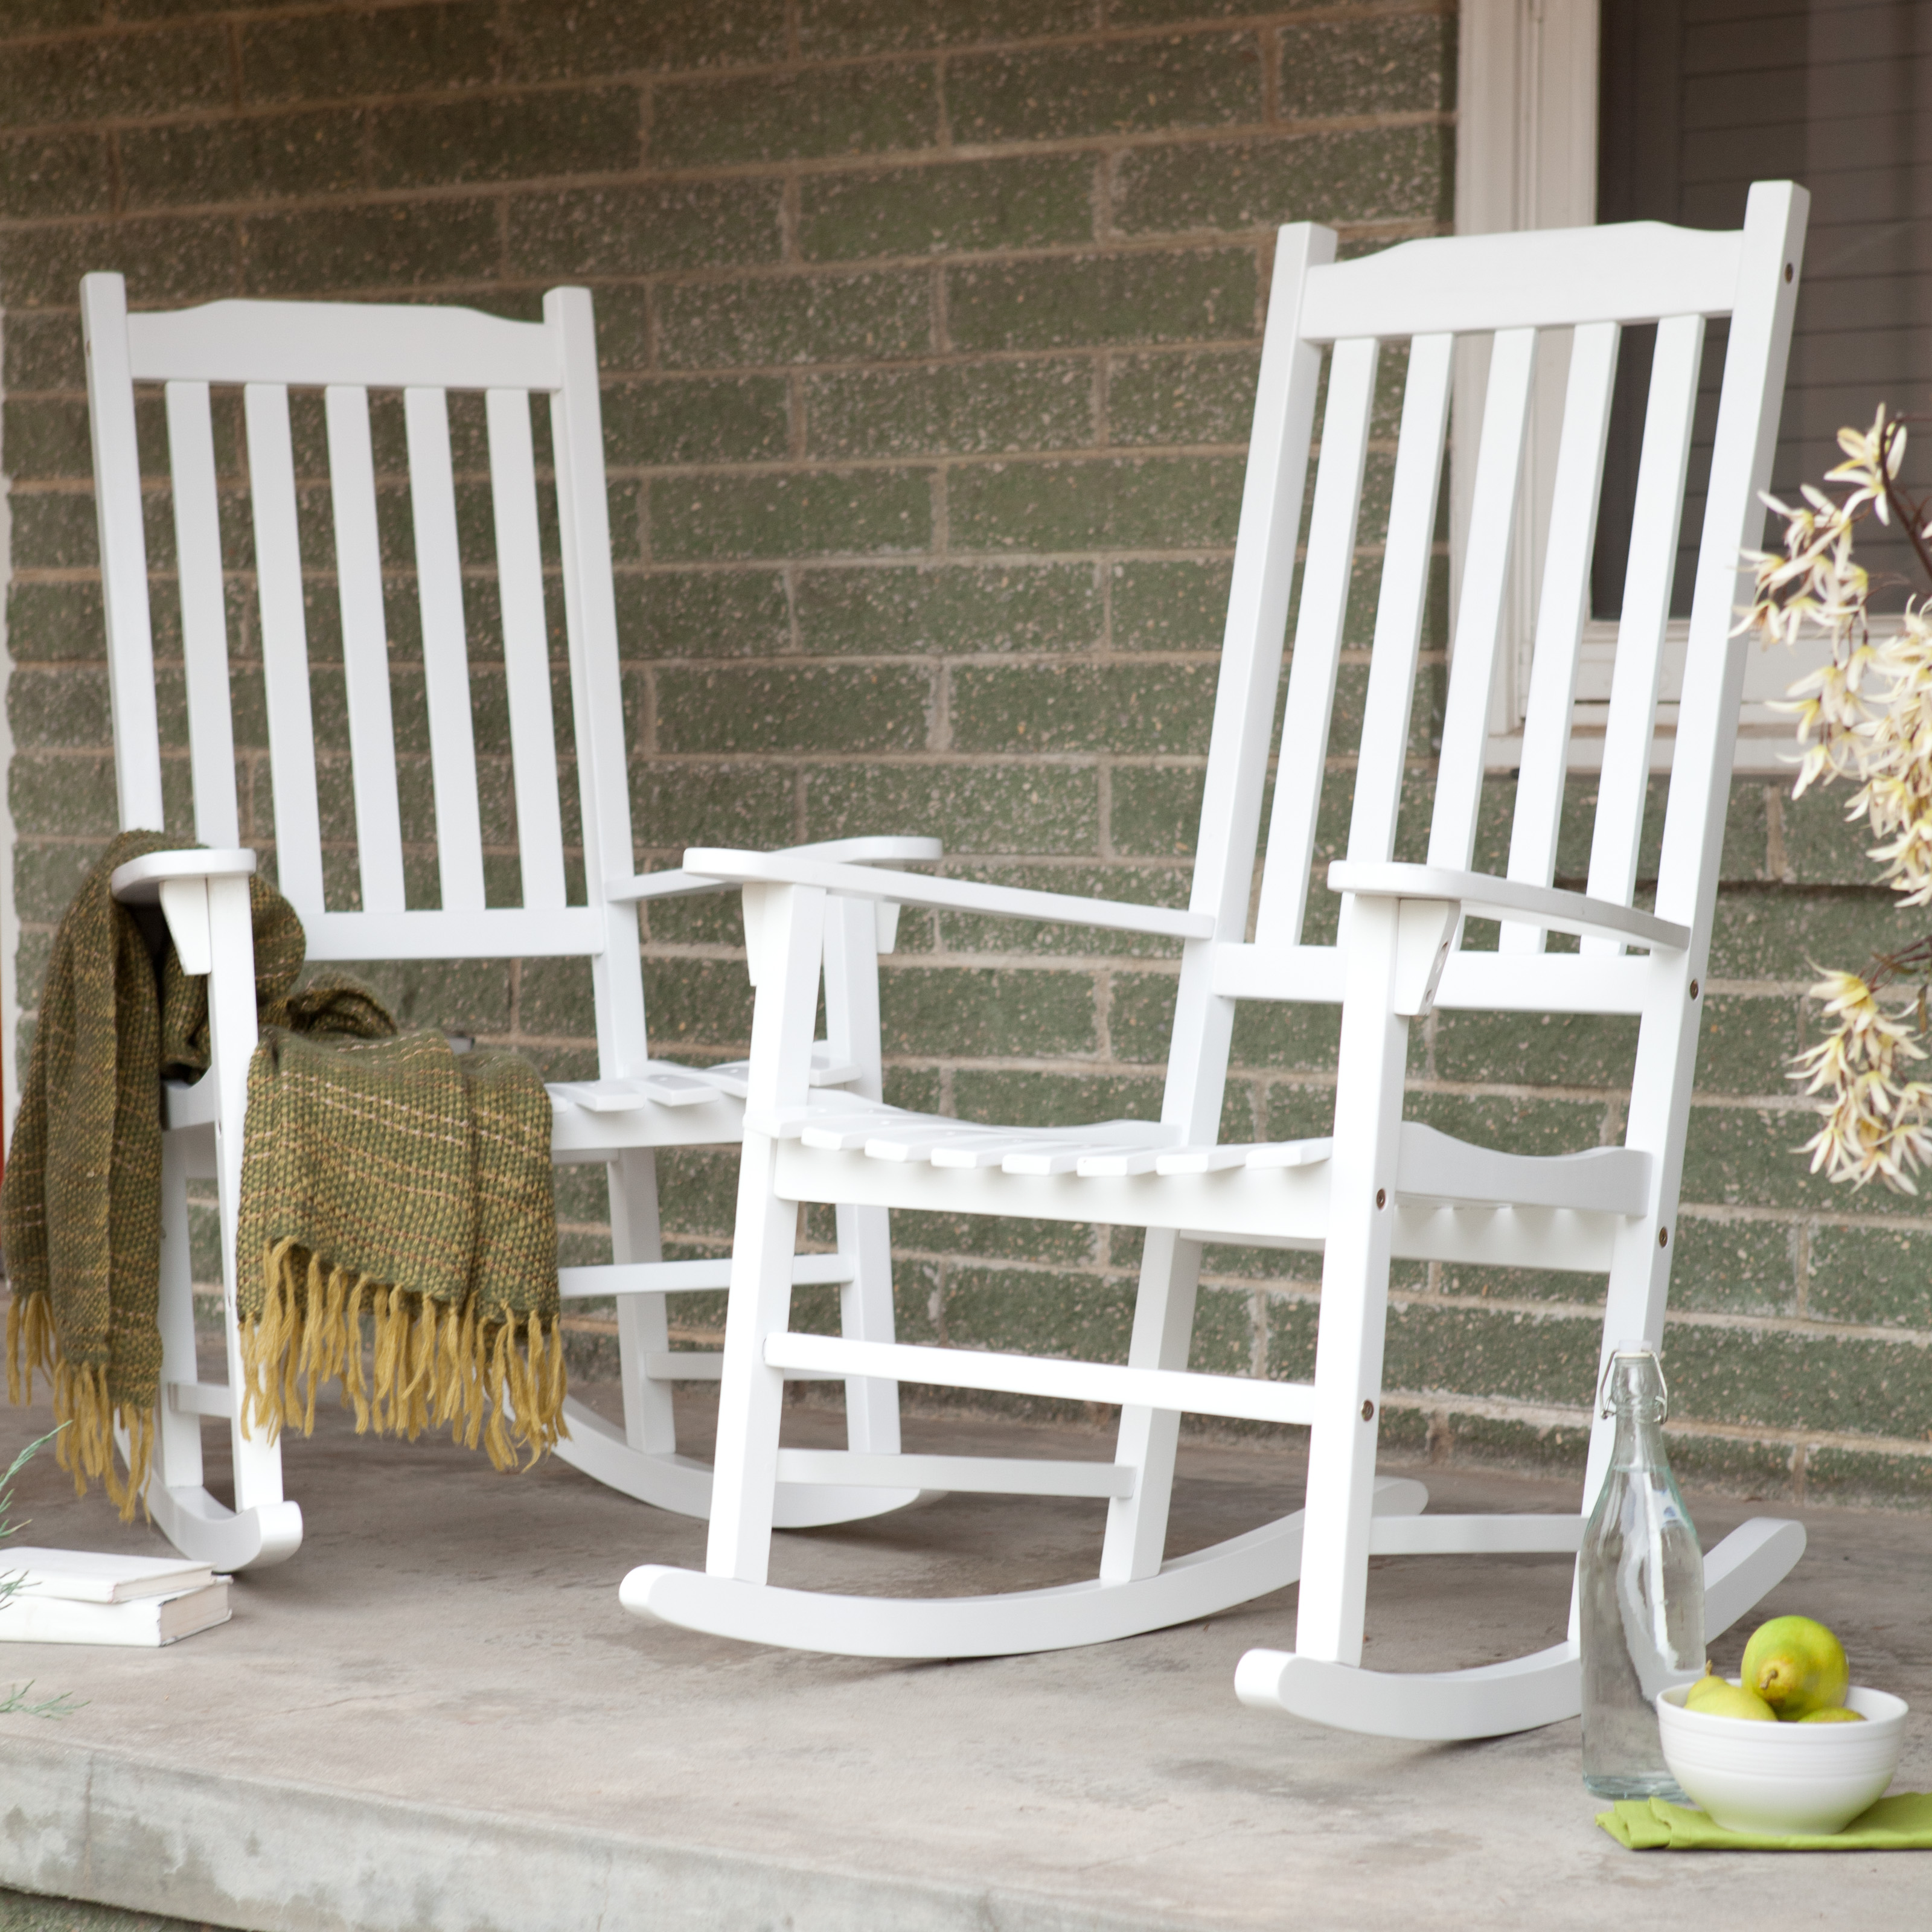 Coral Coast Indoor/Outdoor Mission Slat Rocking Chairs - White - Set of 2 | Hayneedle : white porch rocking chair - Cheerinfomania.Com